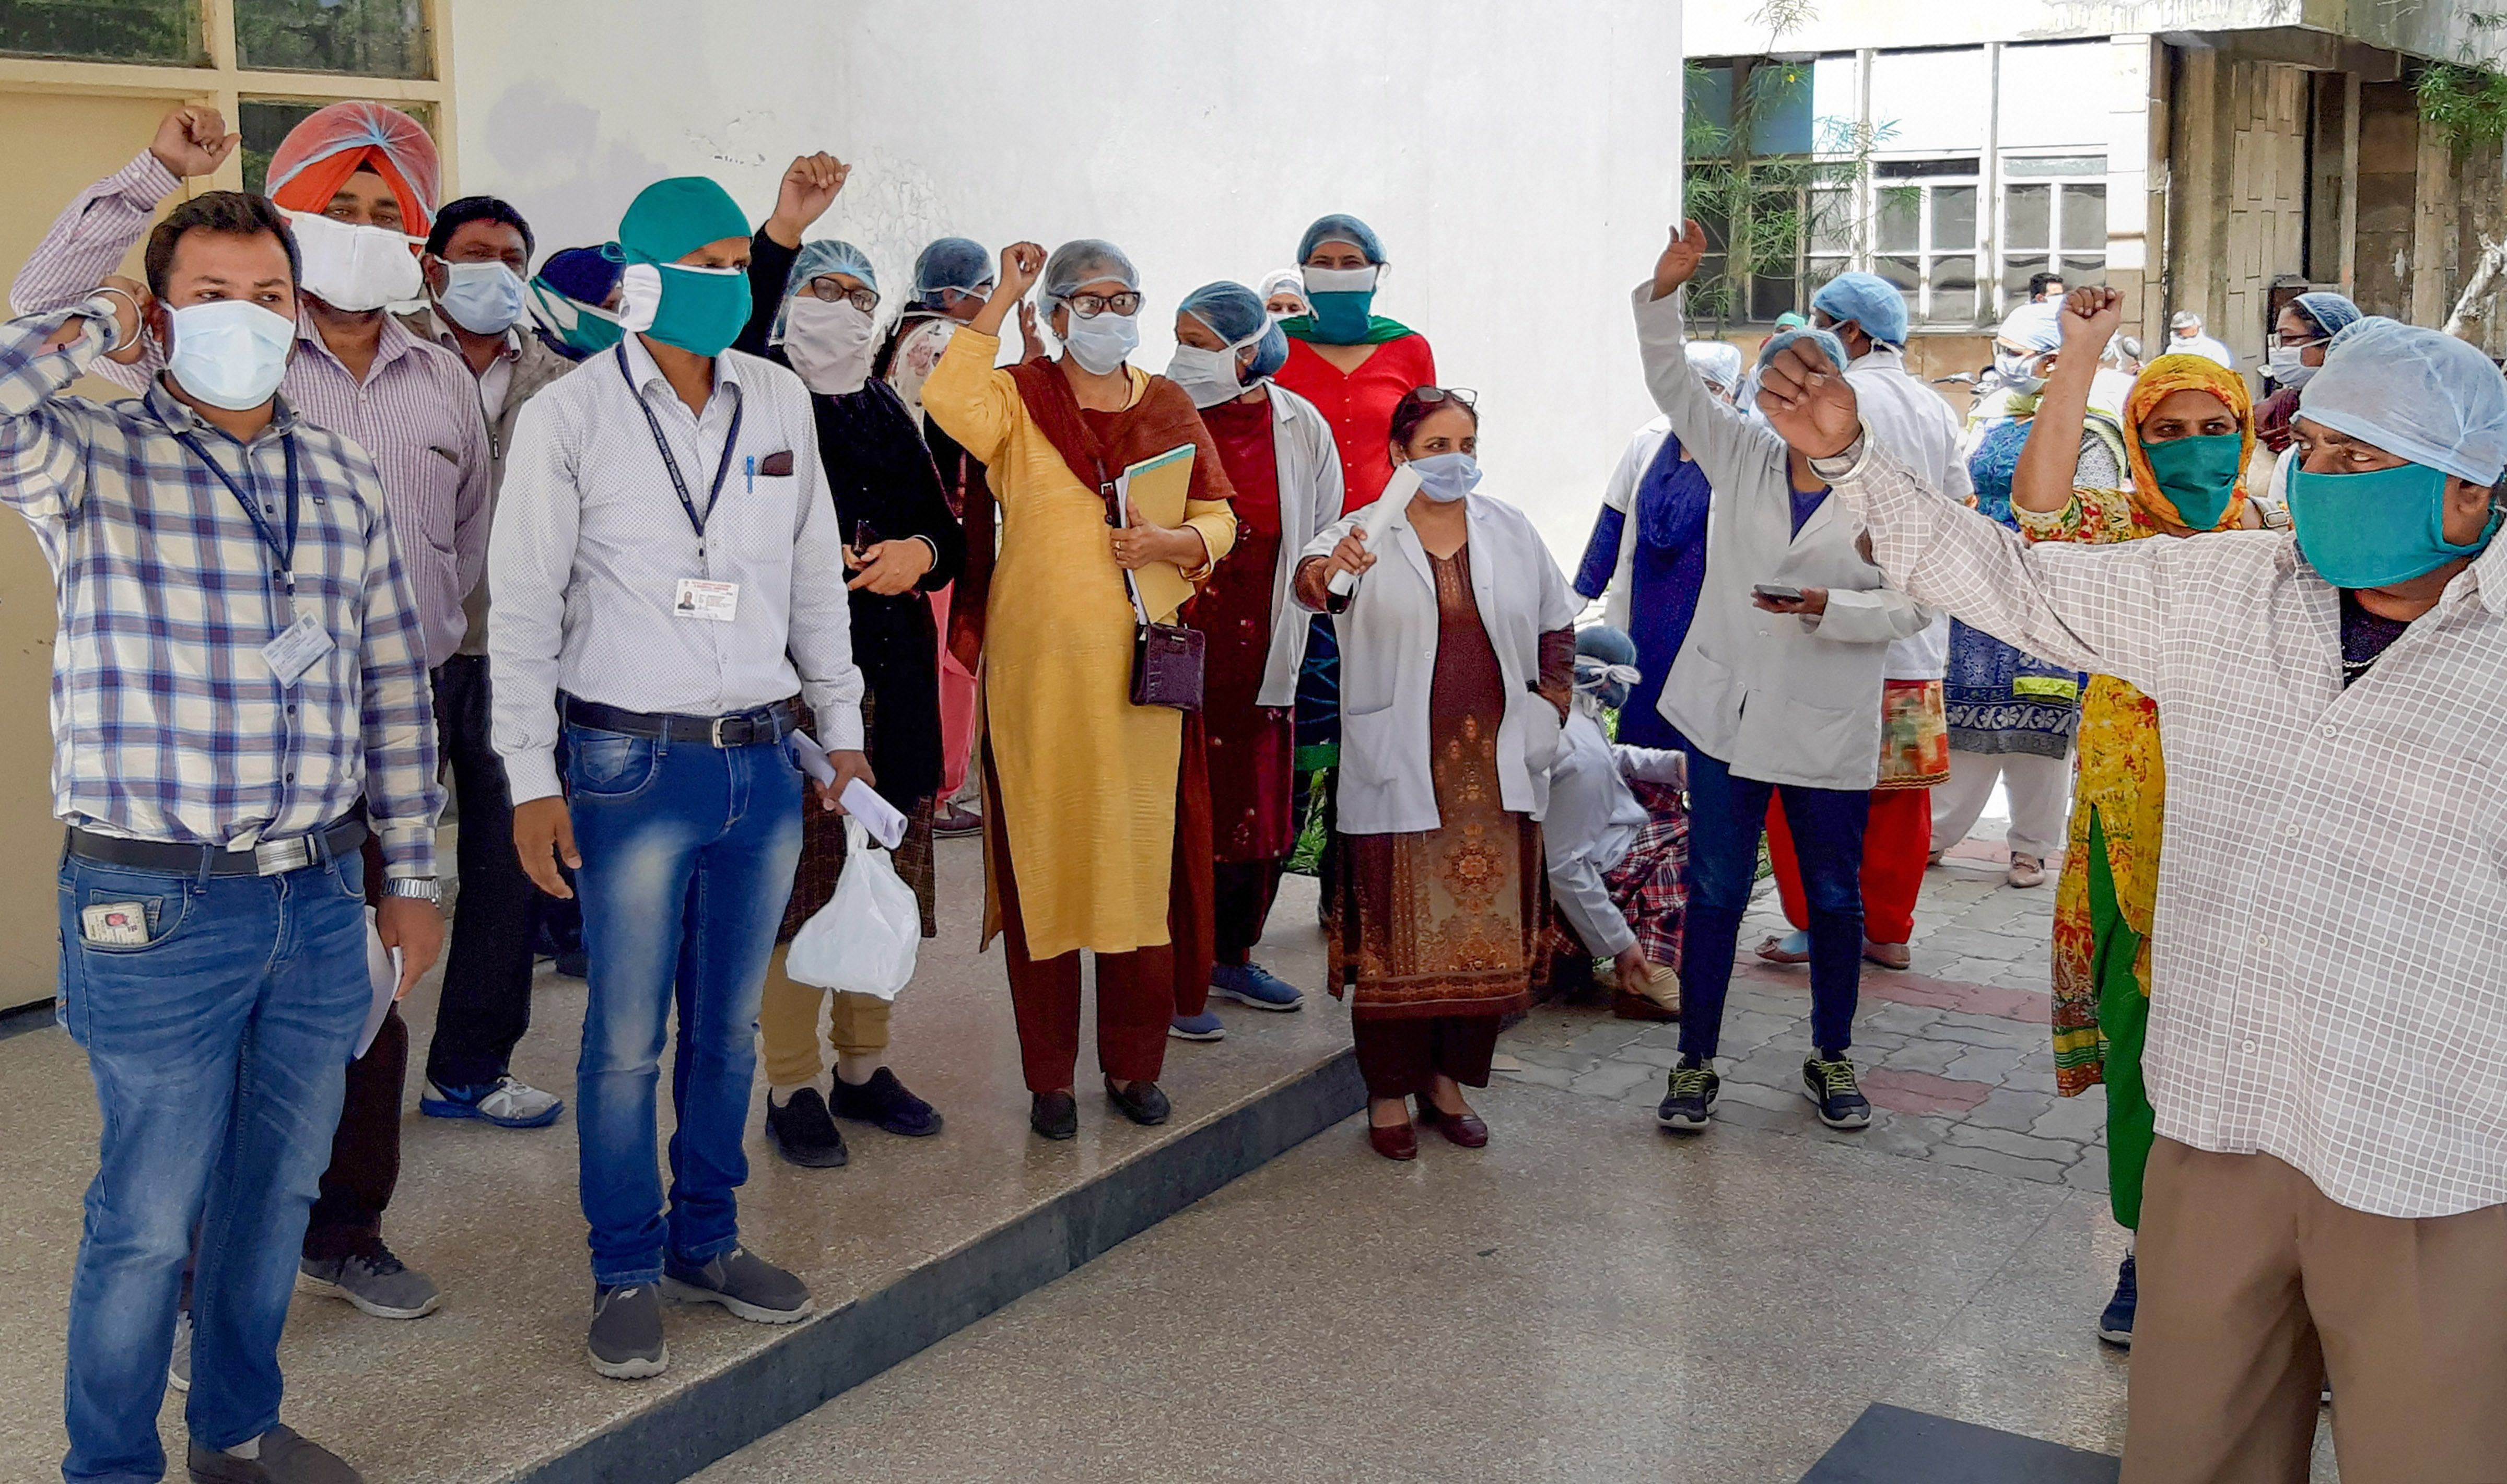 Medical staff of Guru Nanak Dev Hospital stage a protest over the supply of alleged low-quality of Personal Protection Equipment (PPE) and other medical facilities required for the treatment of coronavirus-affected patients, in Amritsar, Friday, April 3, 2020.